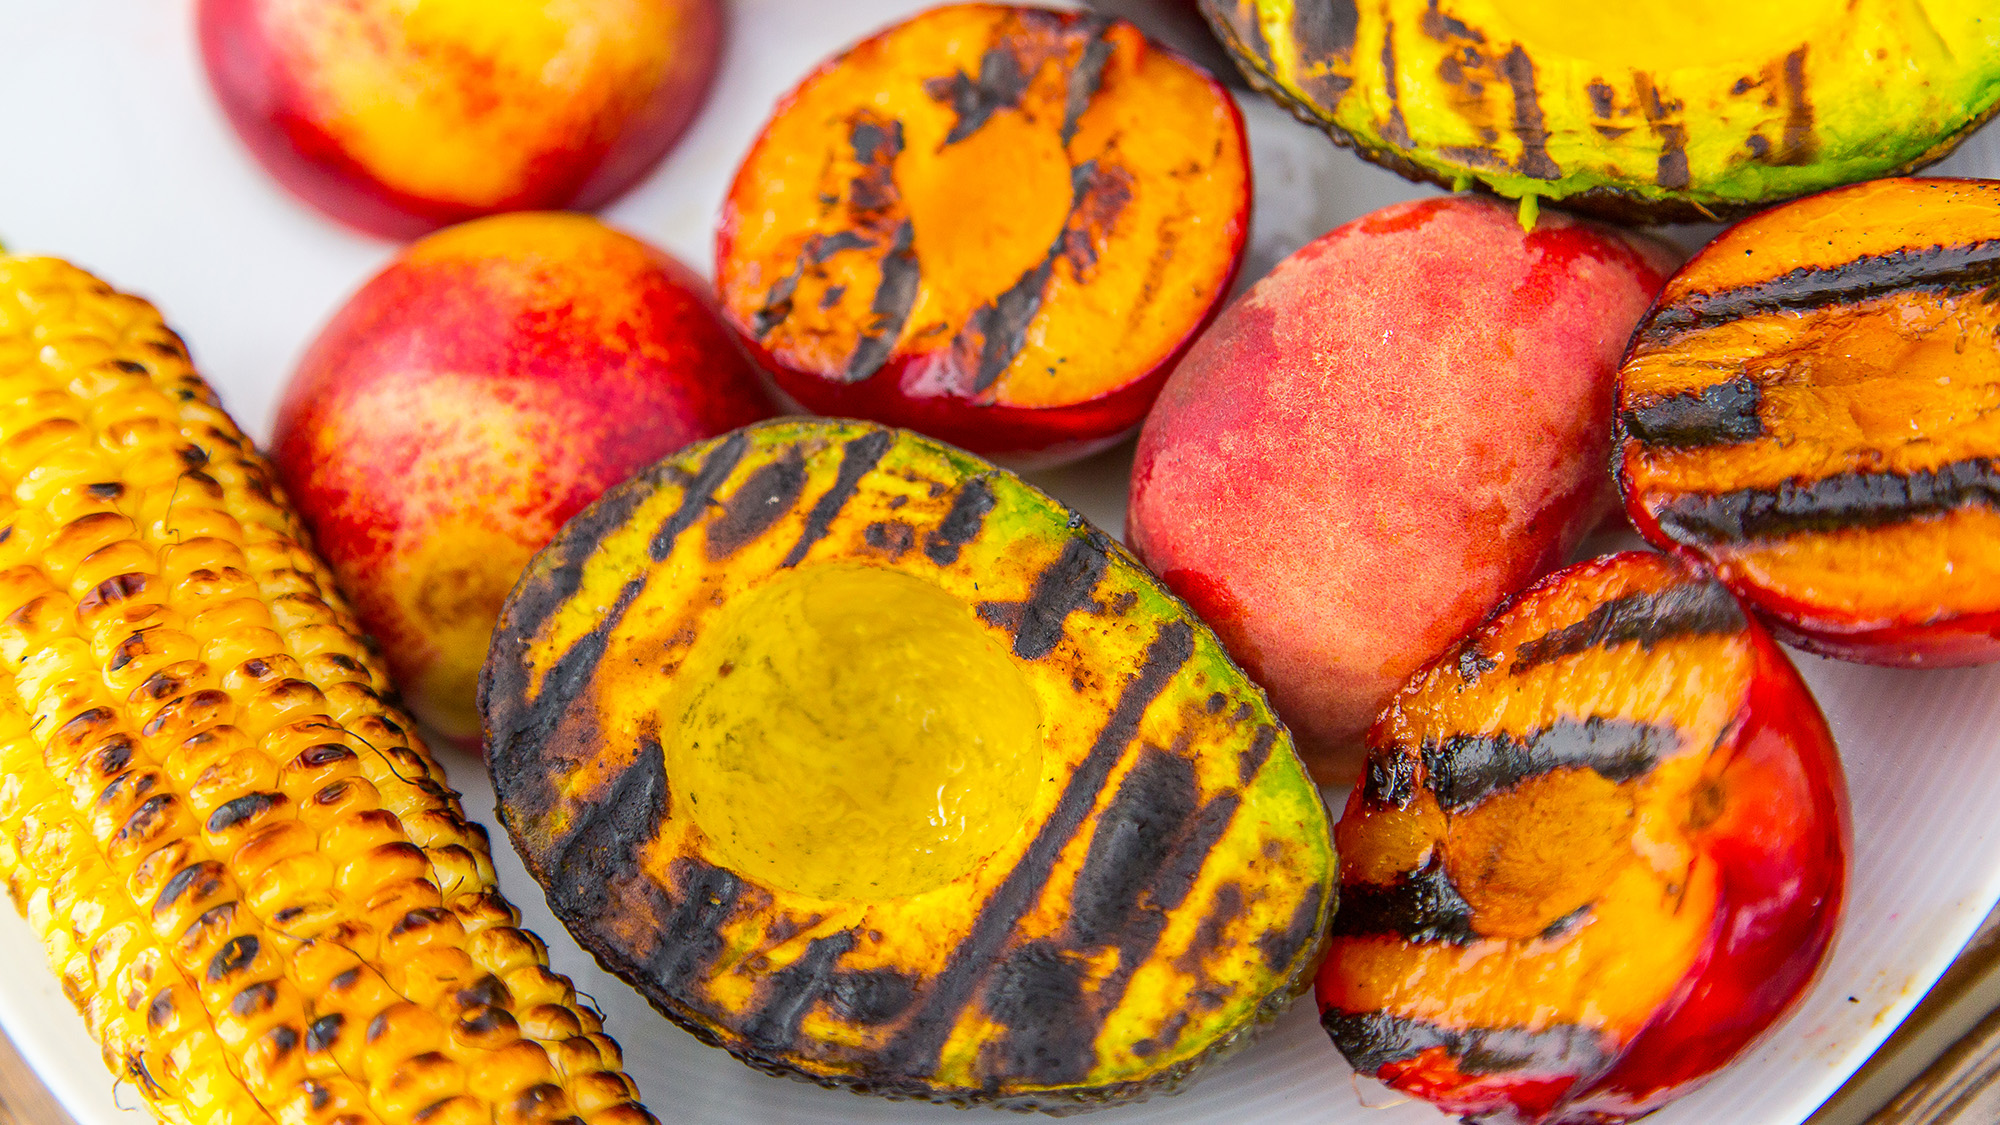 grilled avocados, peaches, and corn